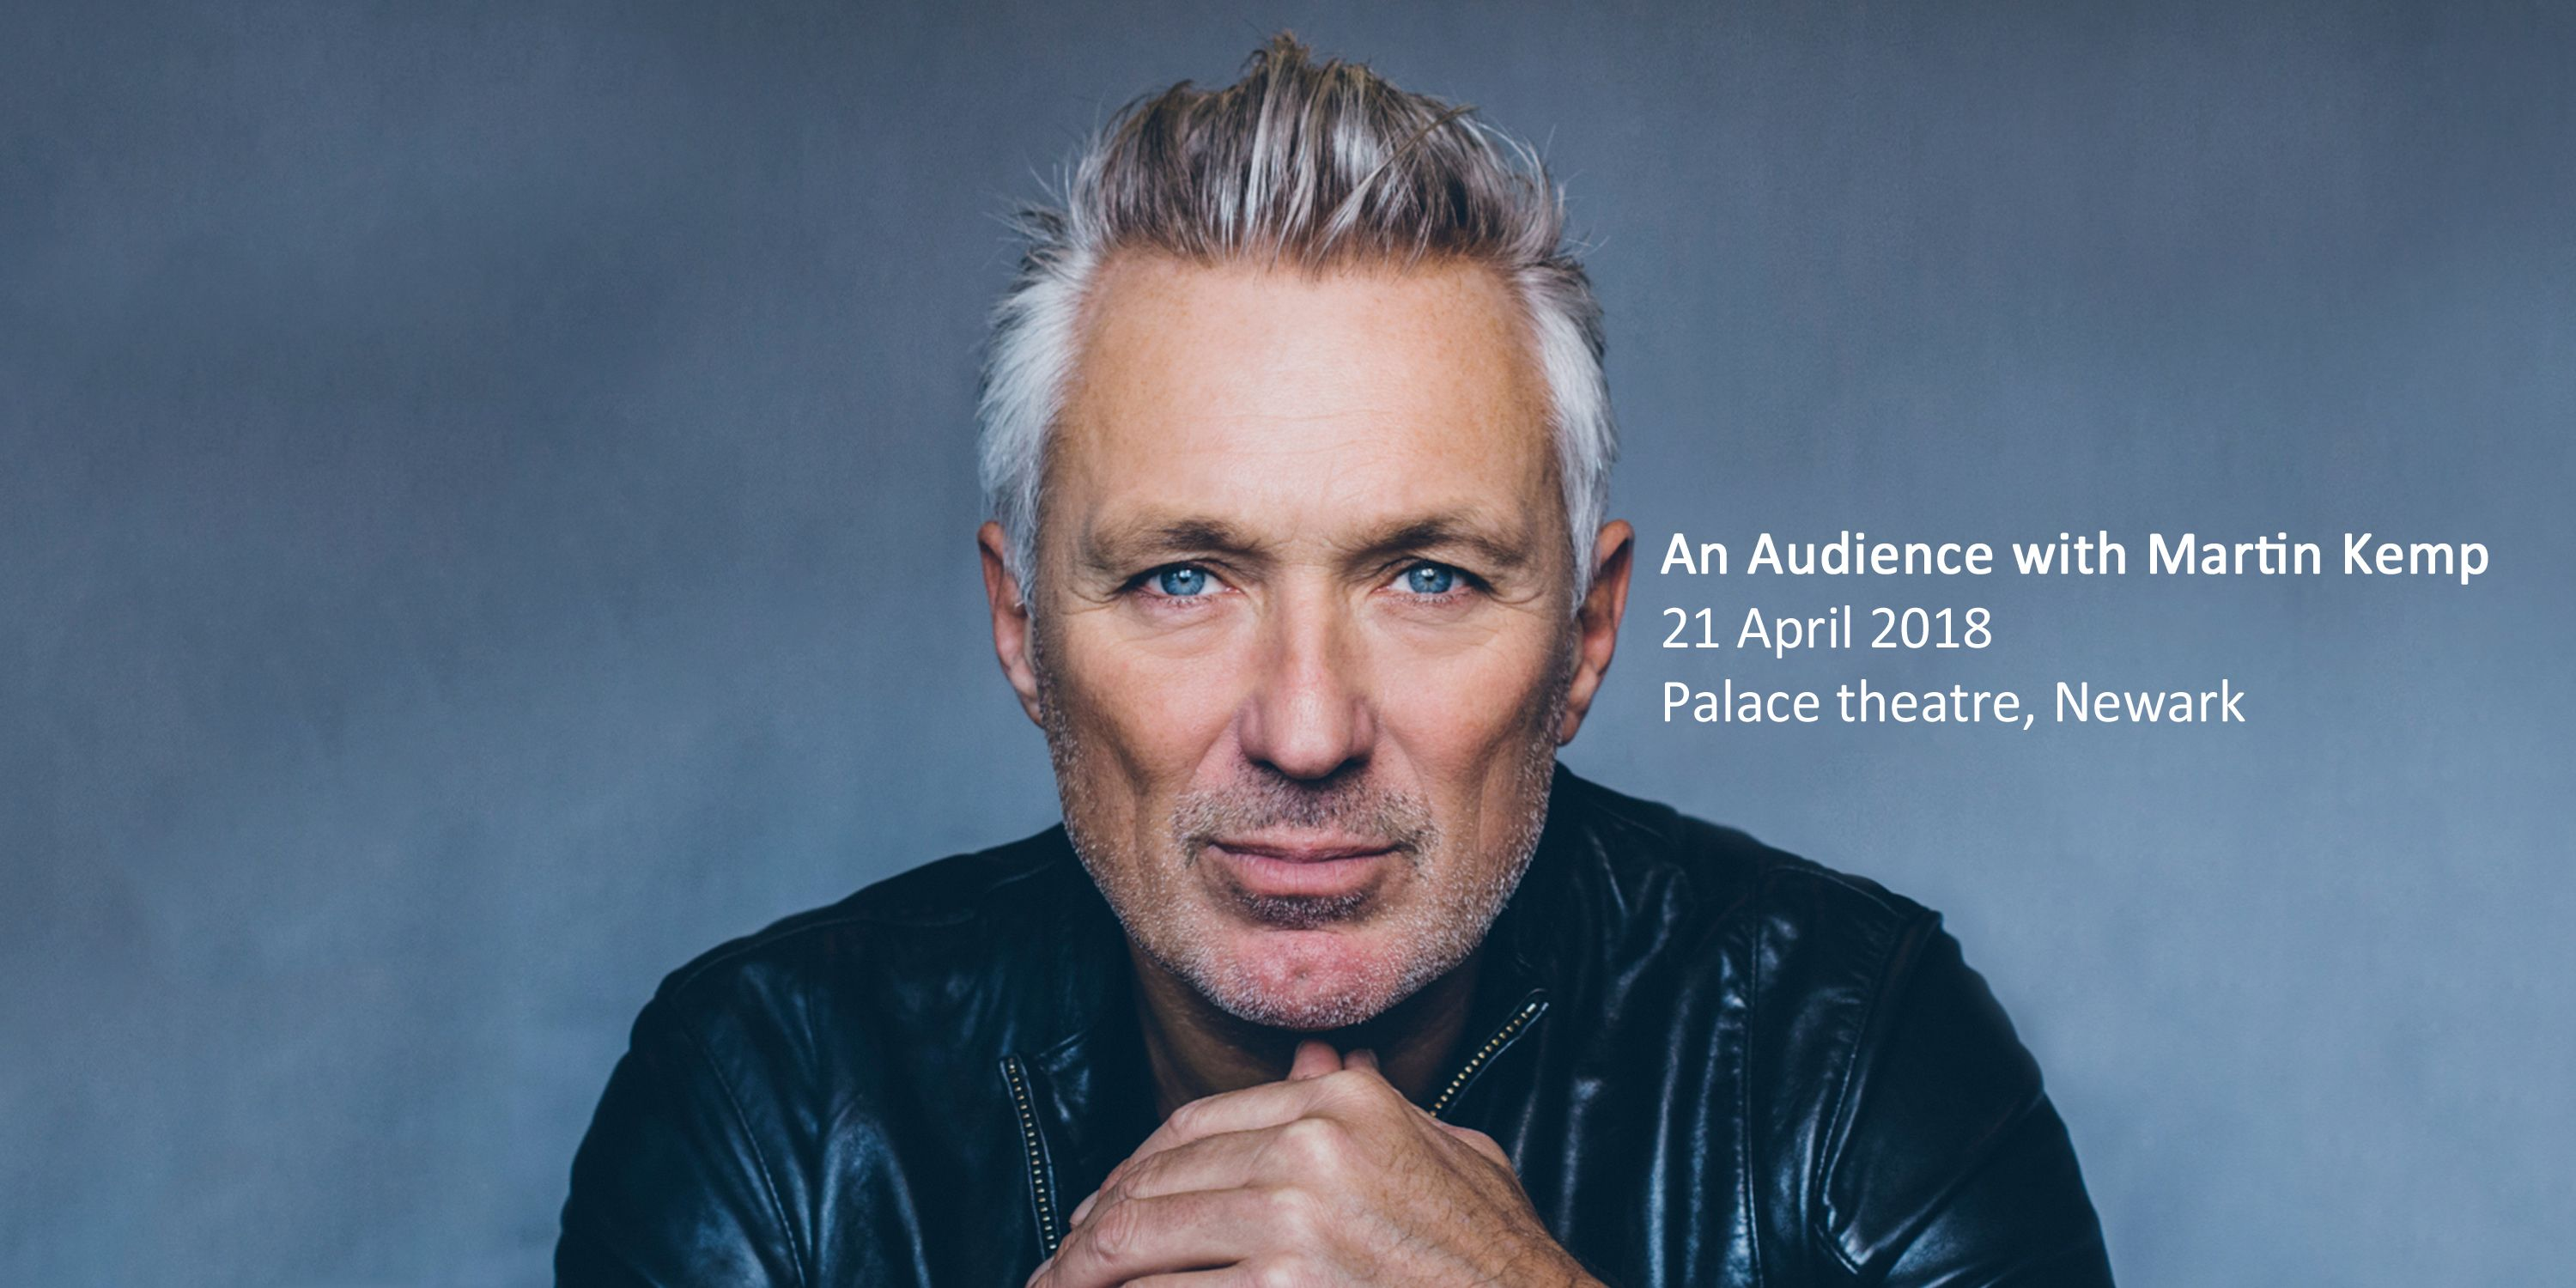 Martin Kemp Is An Actor Musician Author Film Director